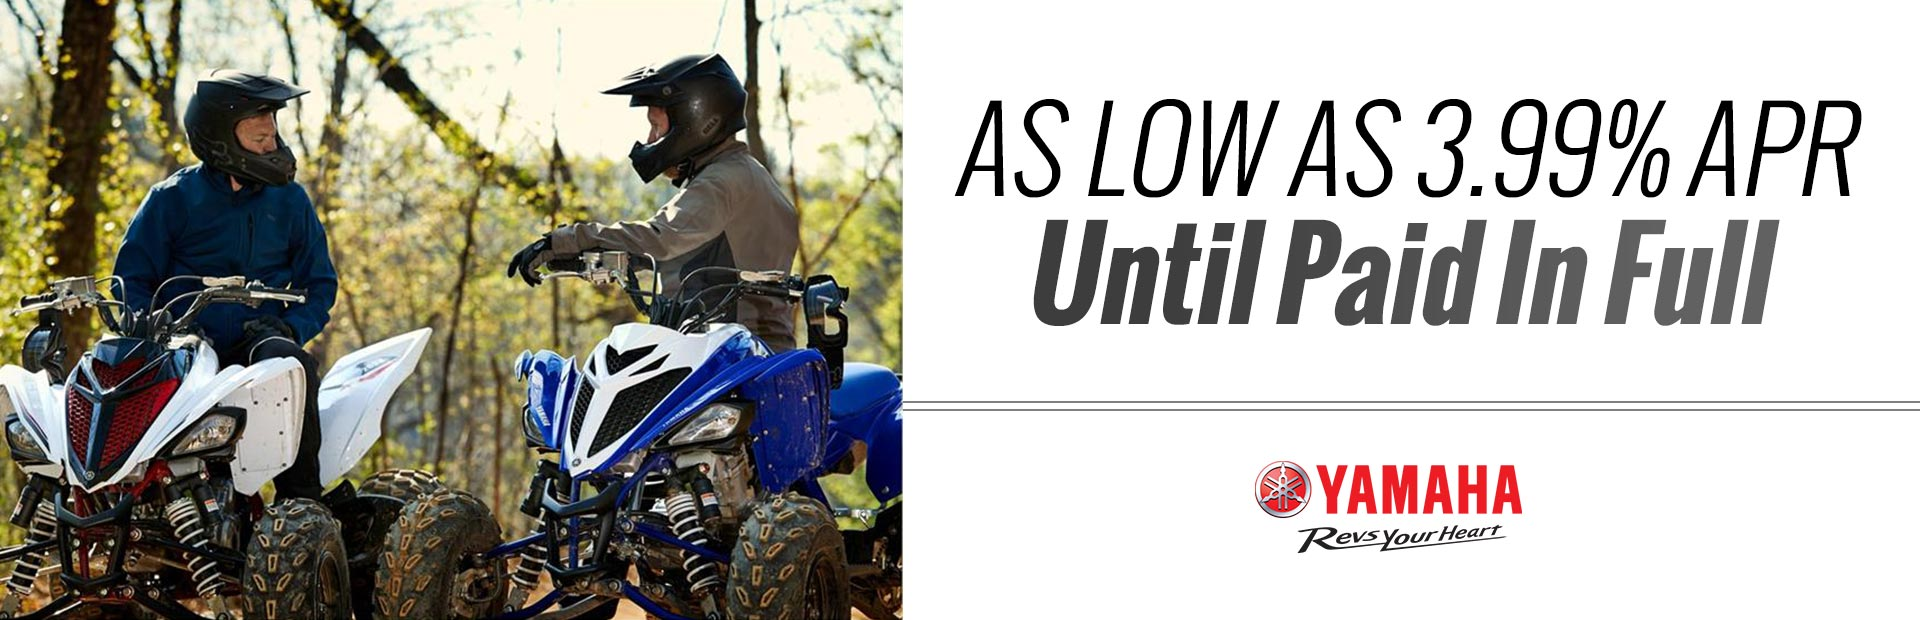 Yamaha: As Low As 3.99% APR Until Paid In Full